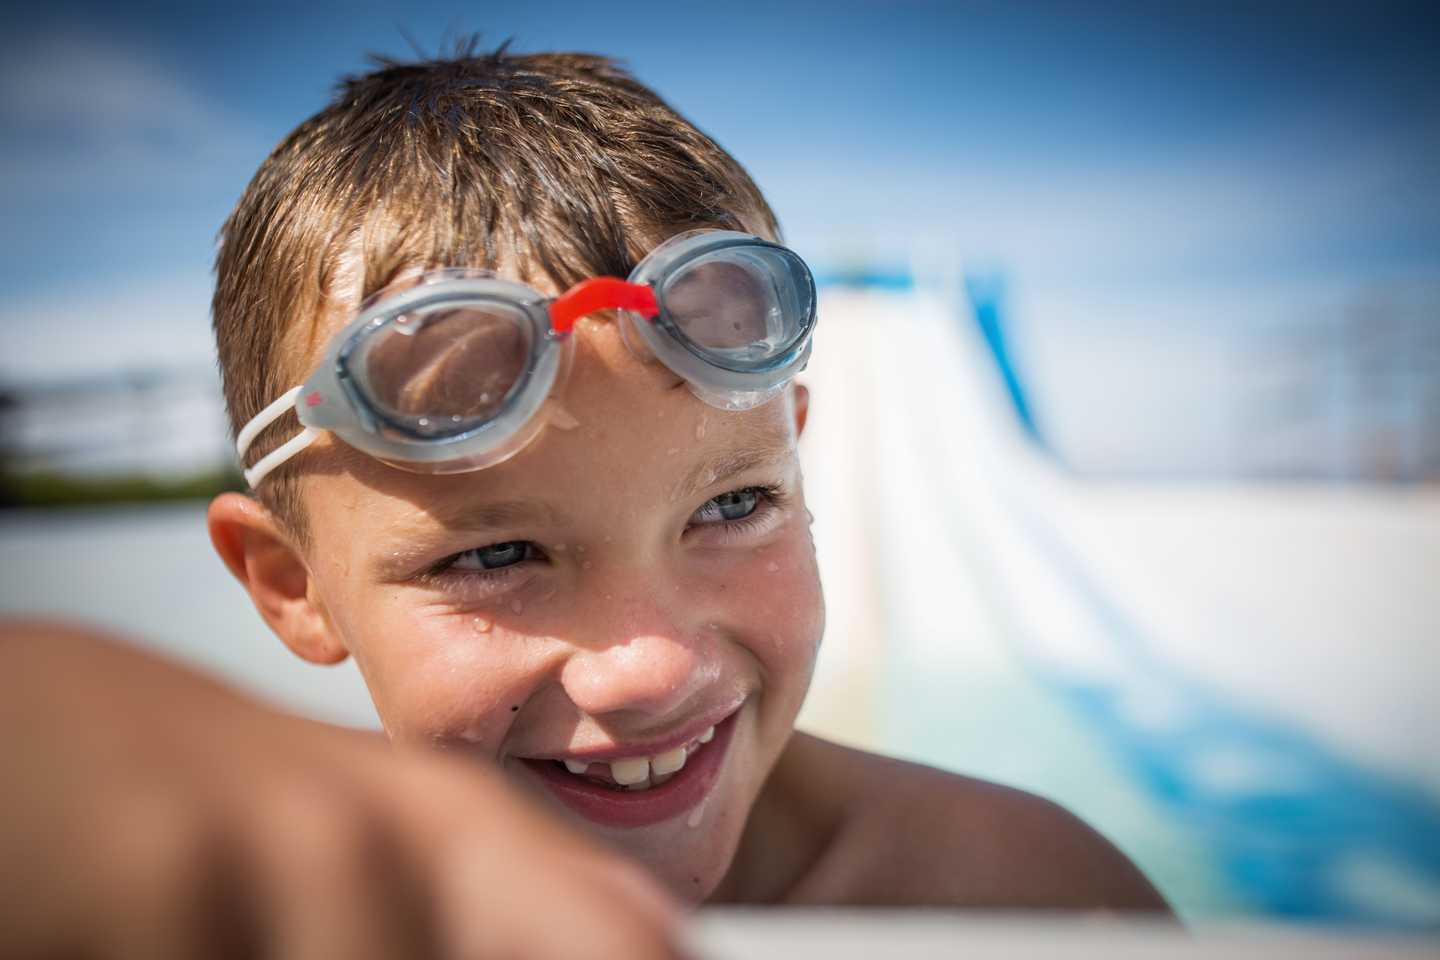 A child with goggles in the outdoor pool